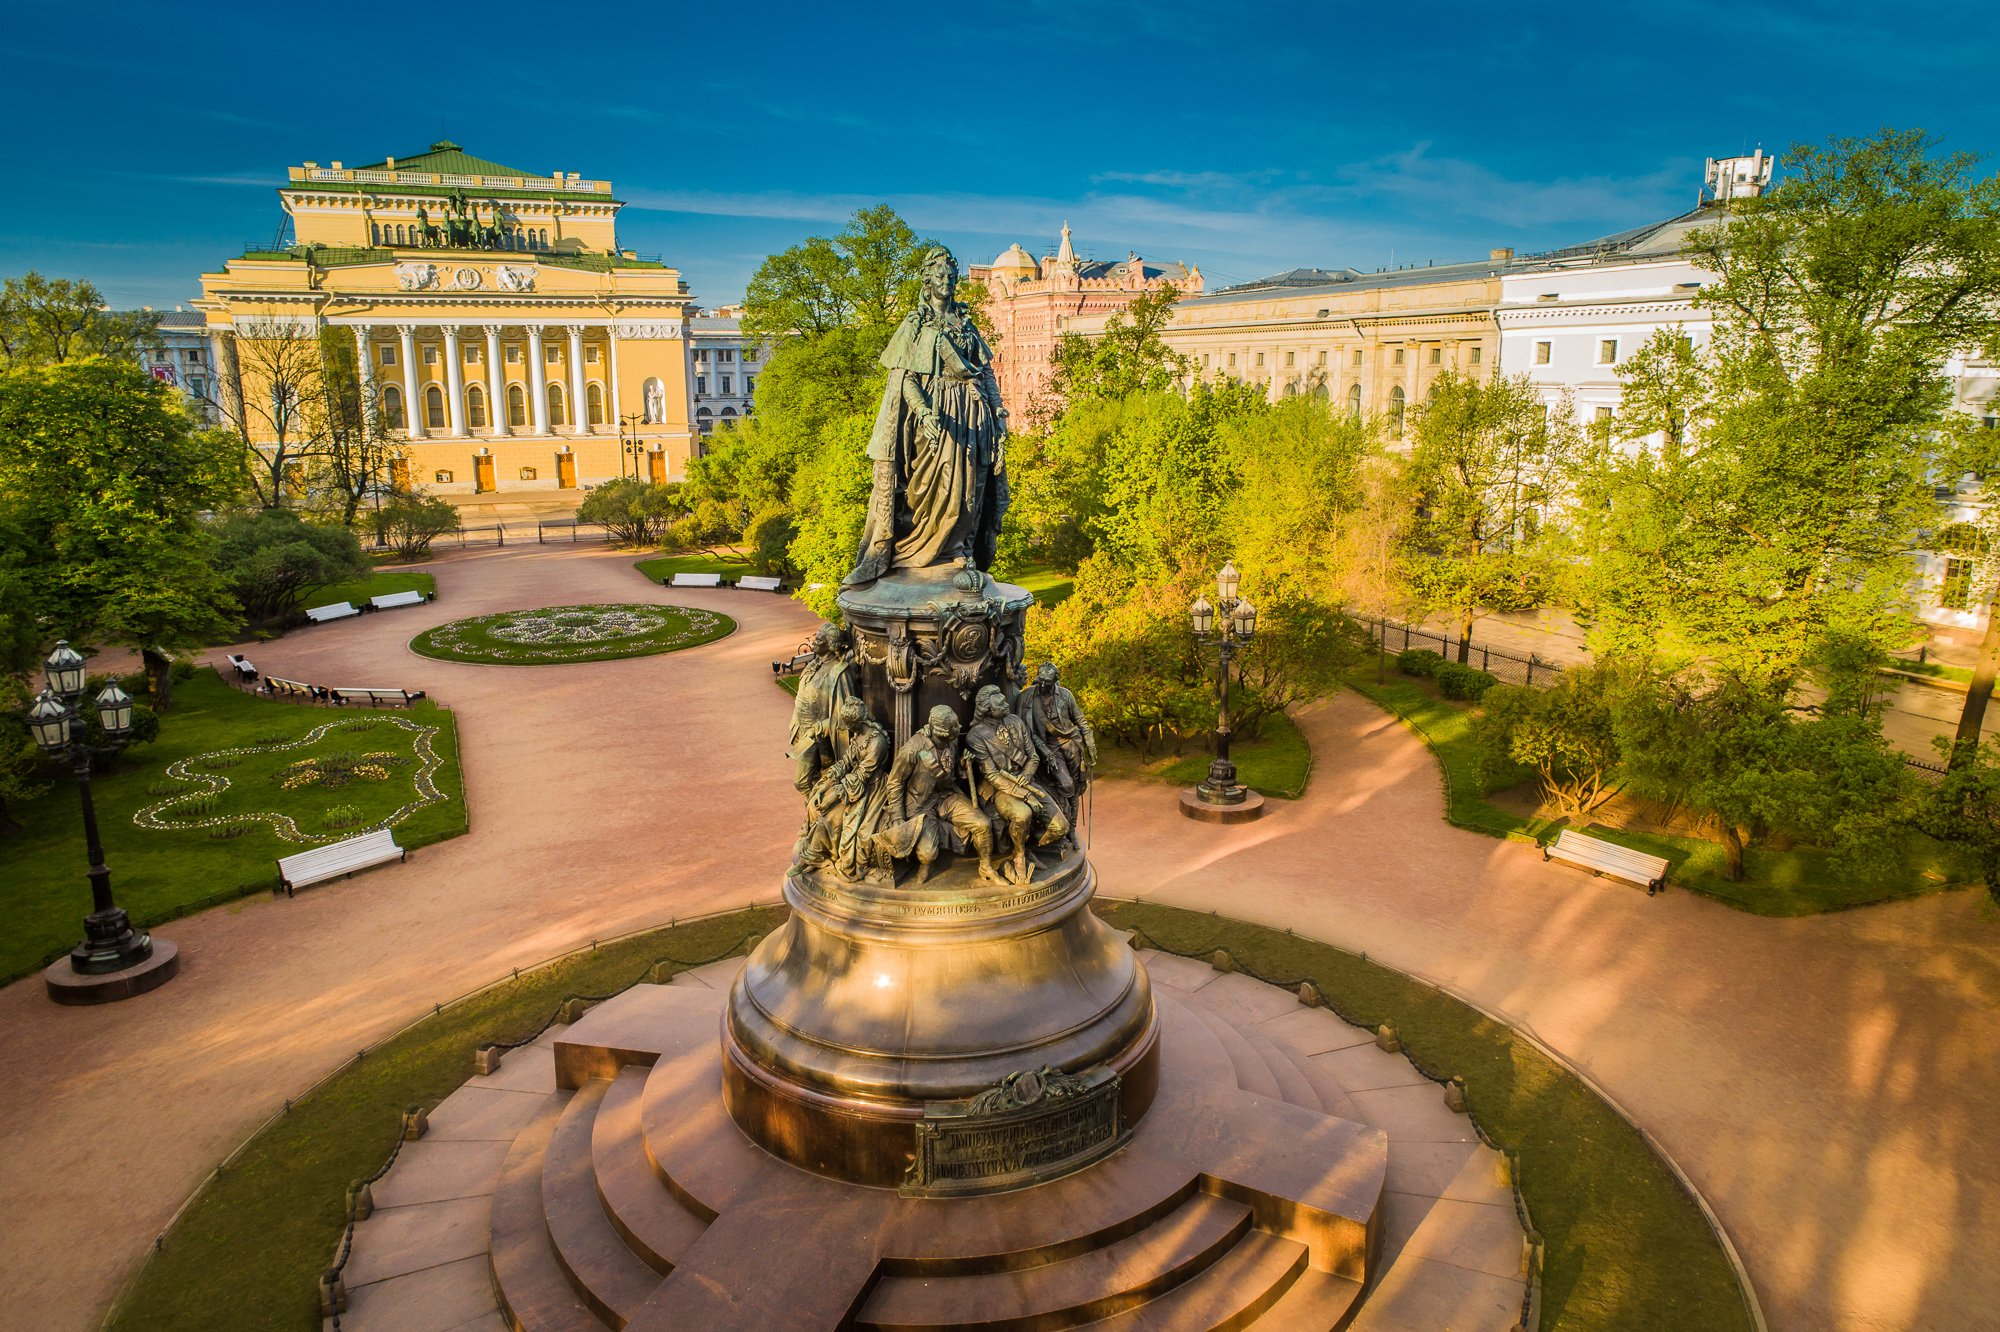 Monument to Catherine The Great in St Petersburg, Russia with the view on Alexandrinsky Theatre